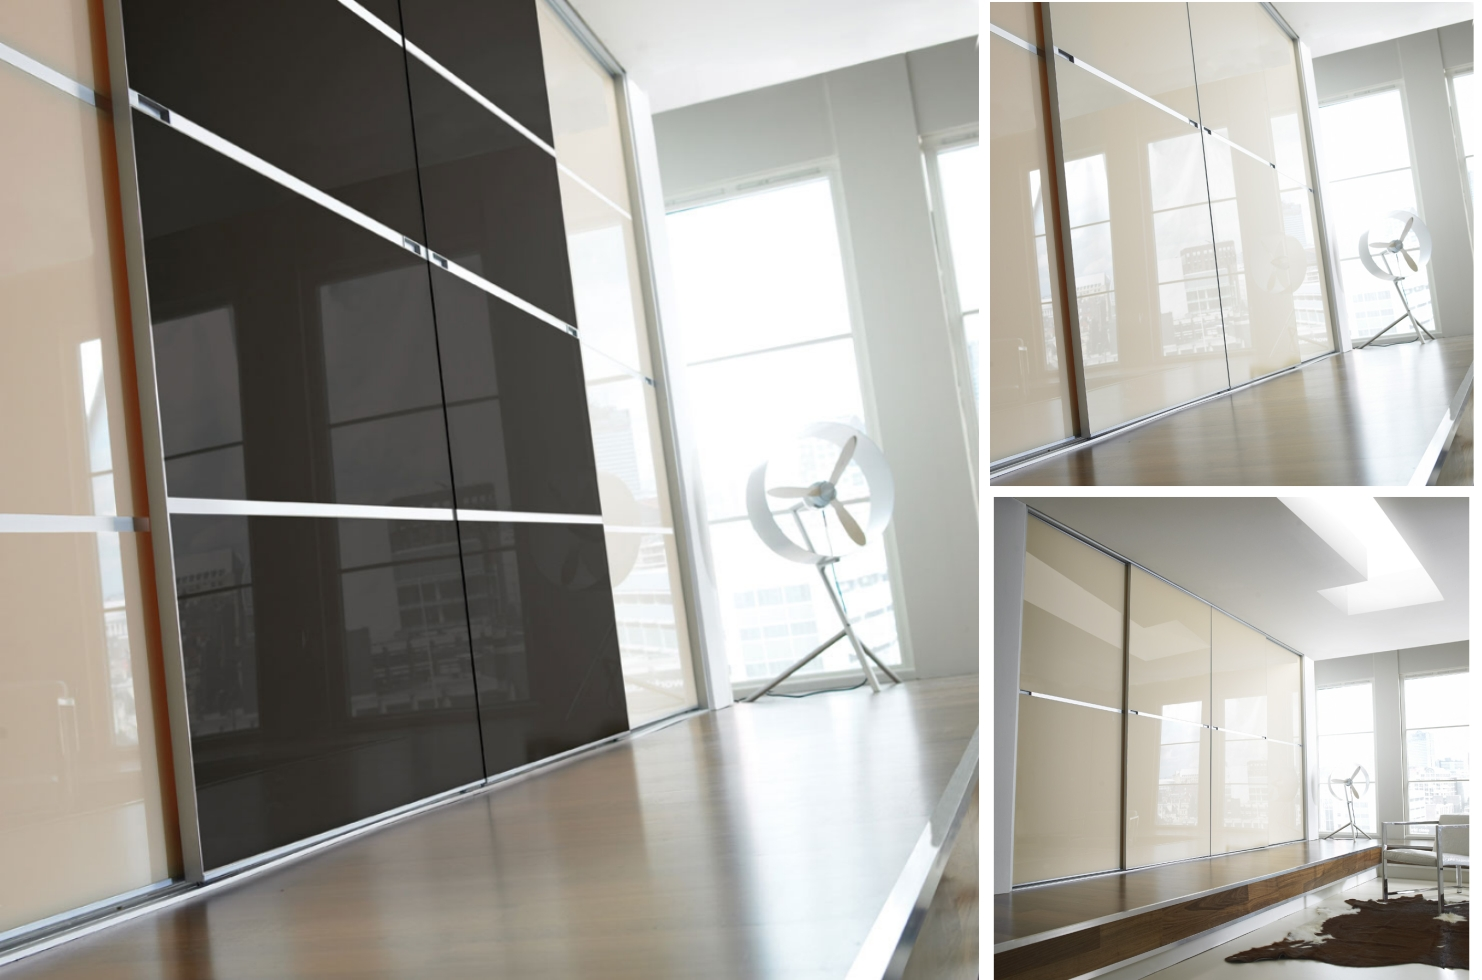 Sliding wardrobe doors and wardrobe interiors minimalist for Sliding wardrobe interior designs